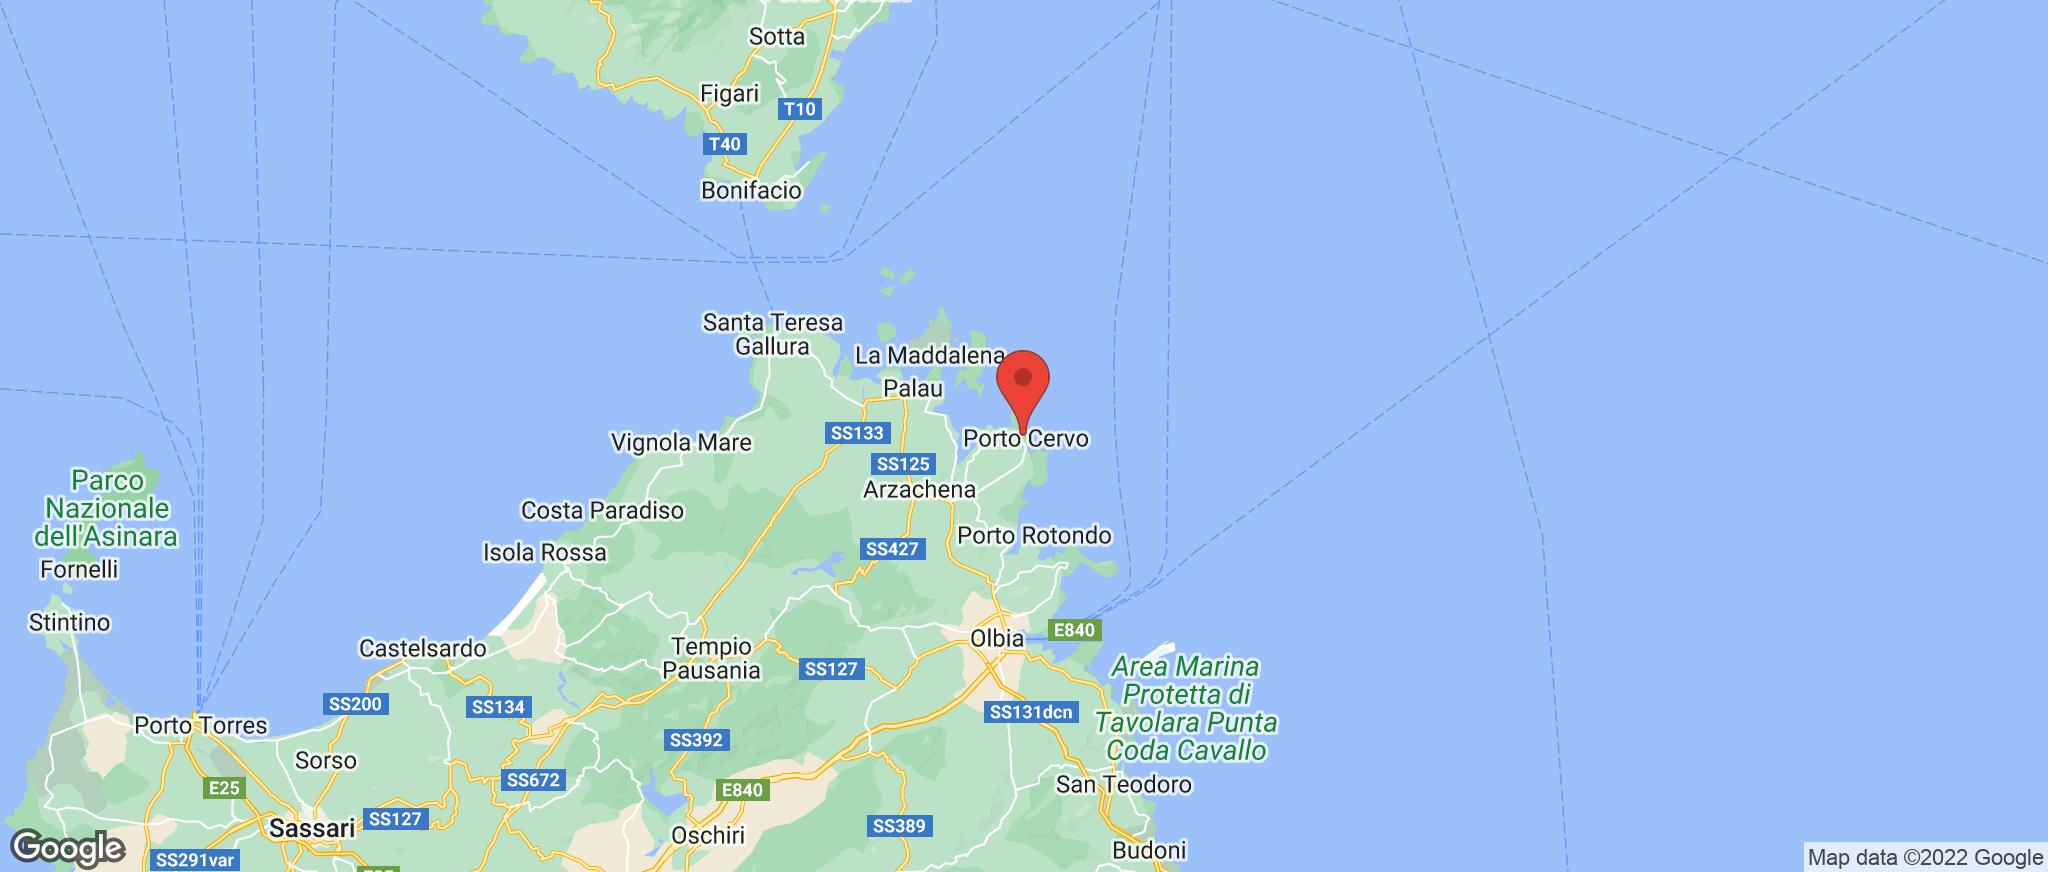 Map showing the location of Porto Cervo